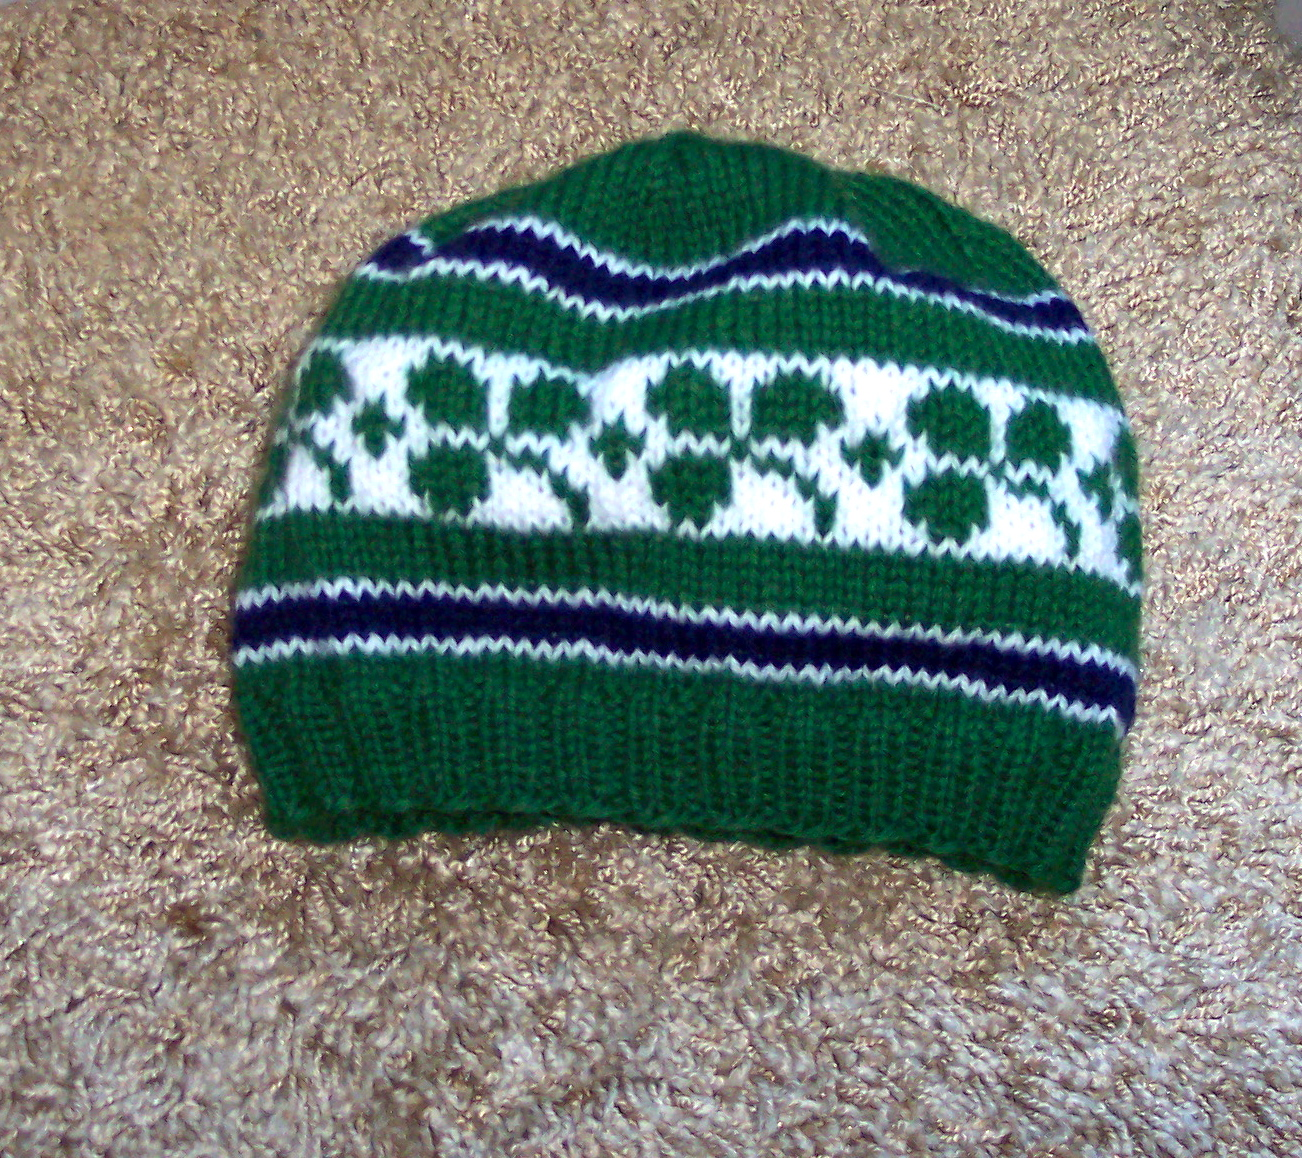 Irish Knitting Patterns Free : Getting Ready for St. Patrick s Day   knit a bunch of shamrocks   free patter...